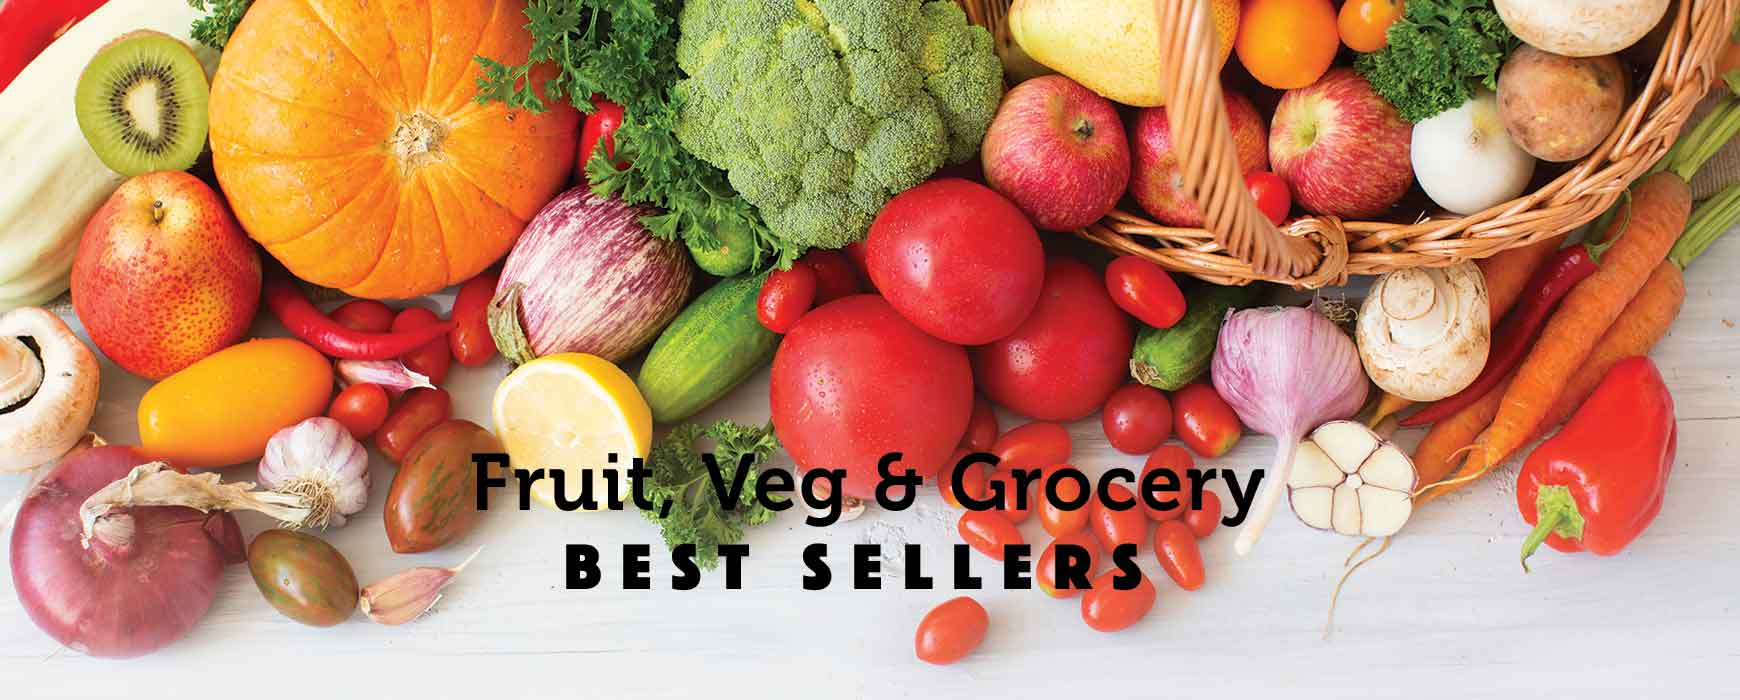 Fruit, Vegetables & Grocery